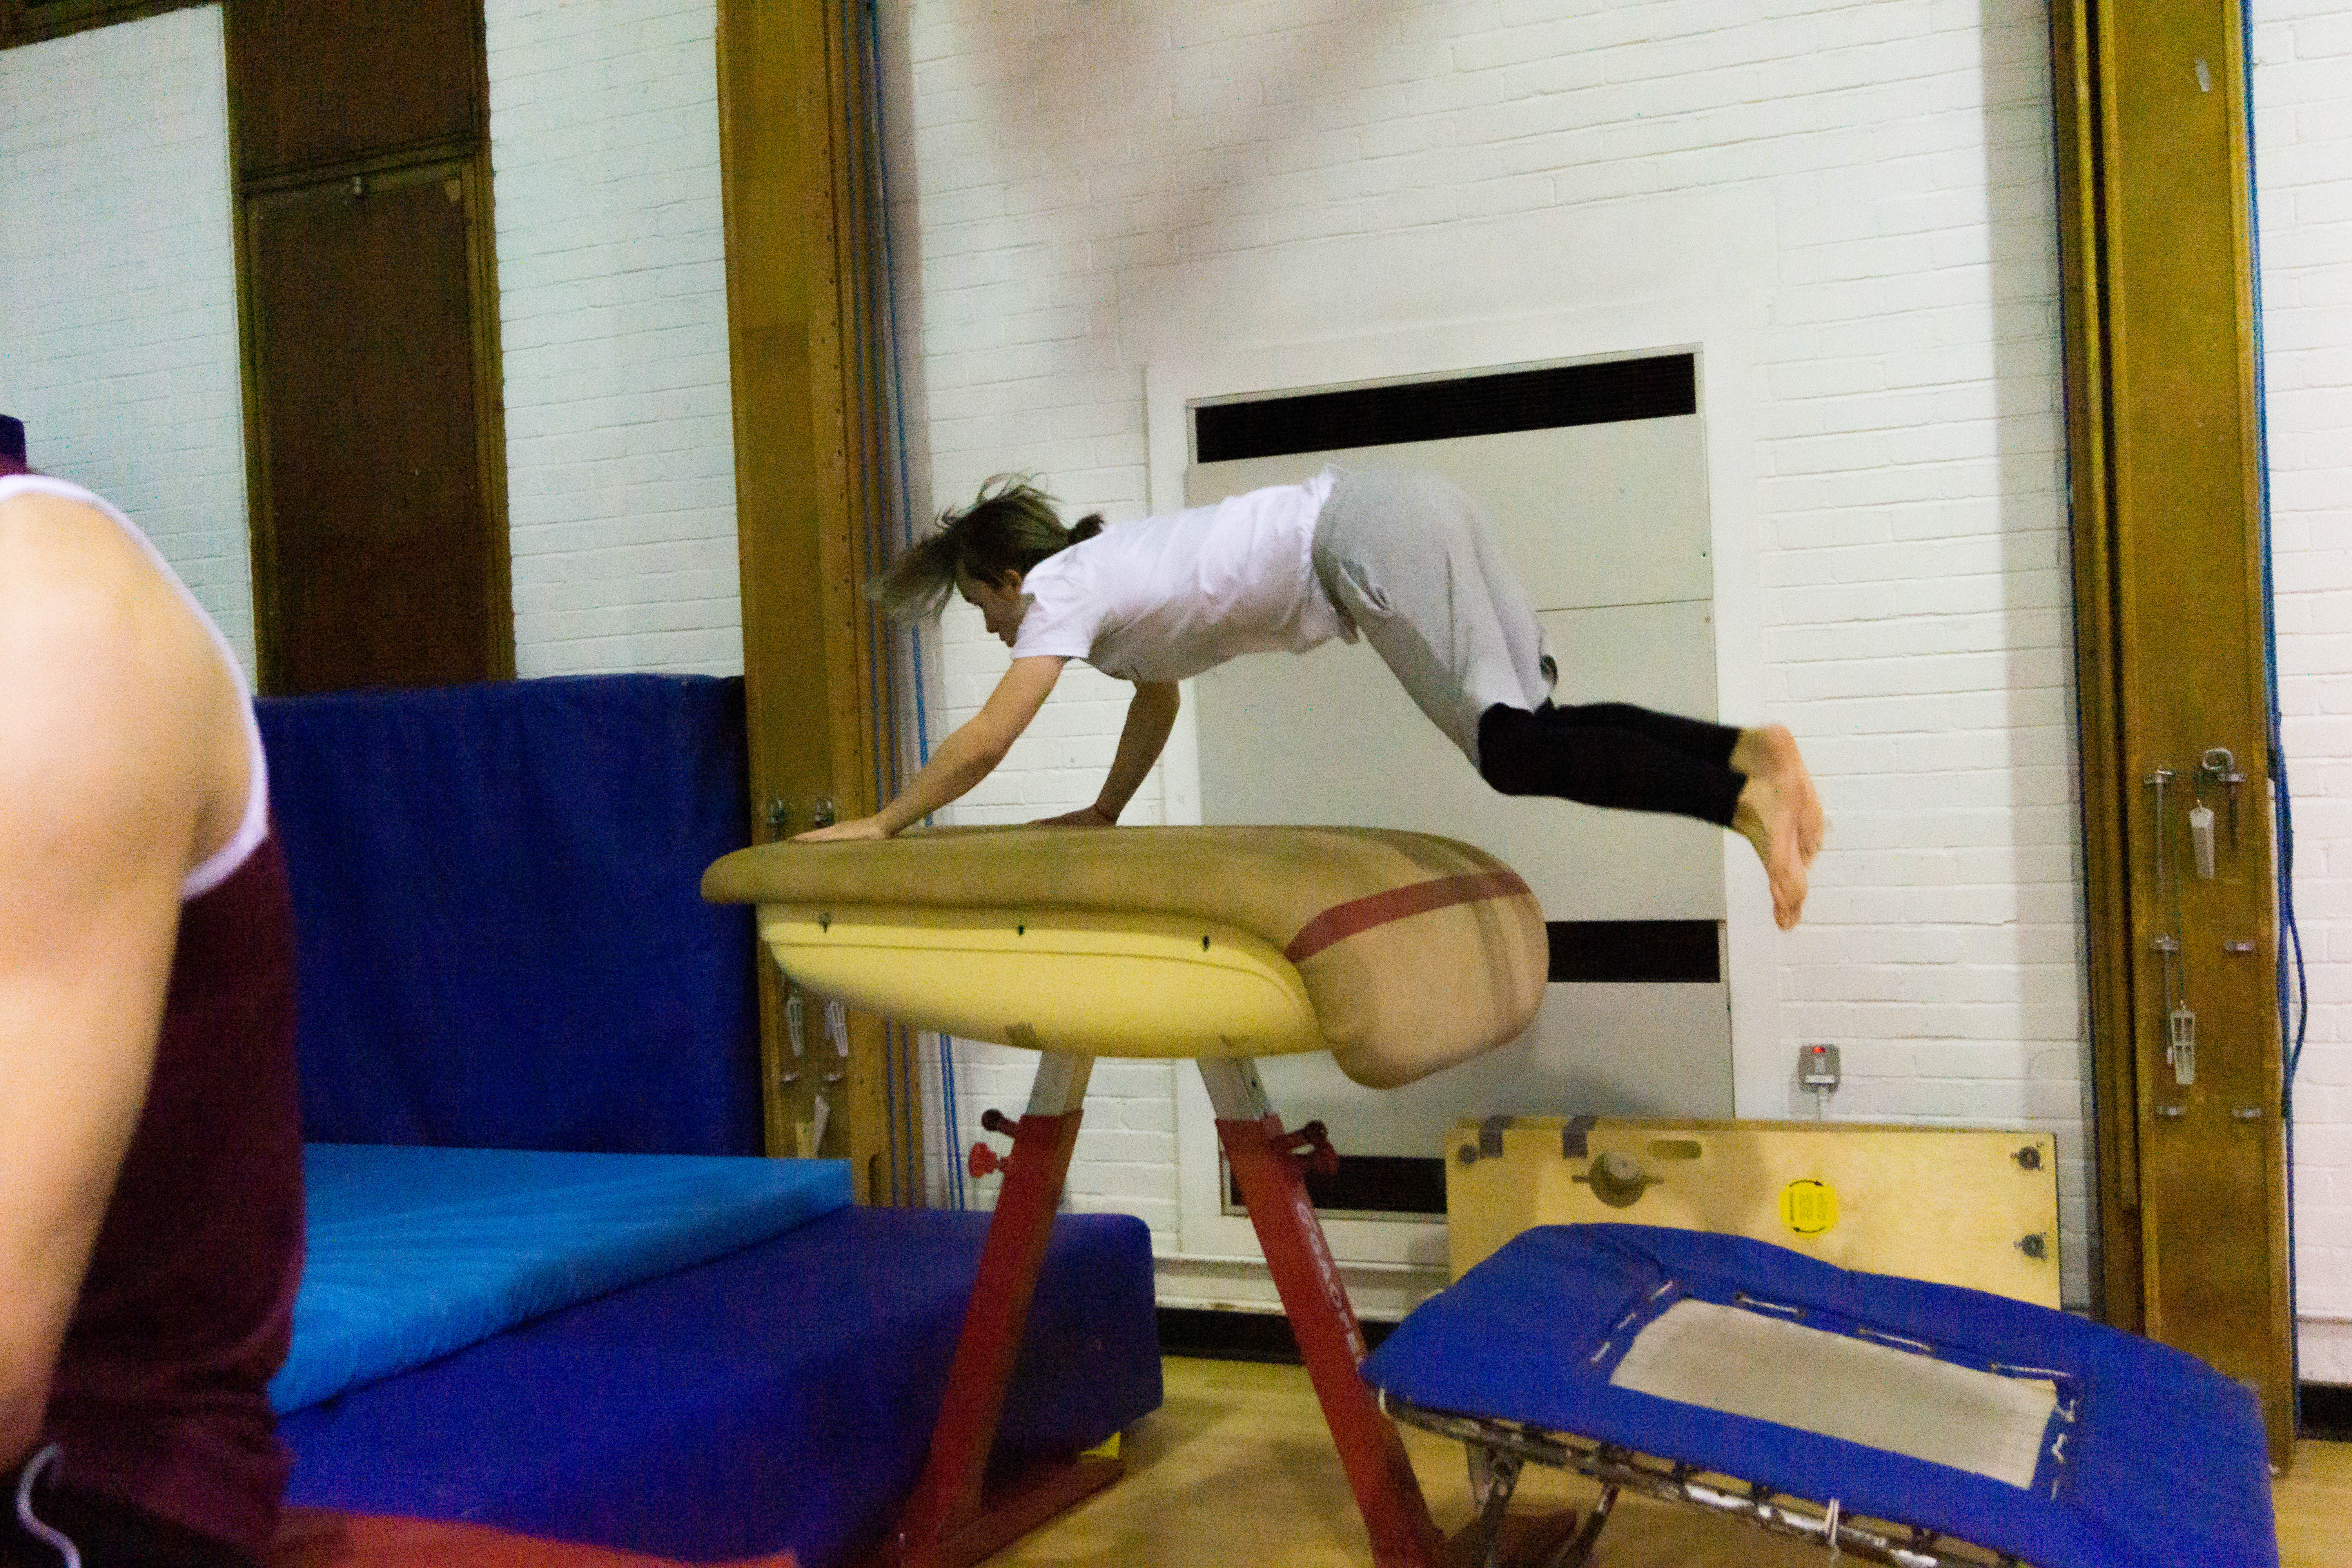 Gymnast performing a vault